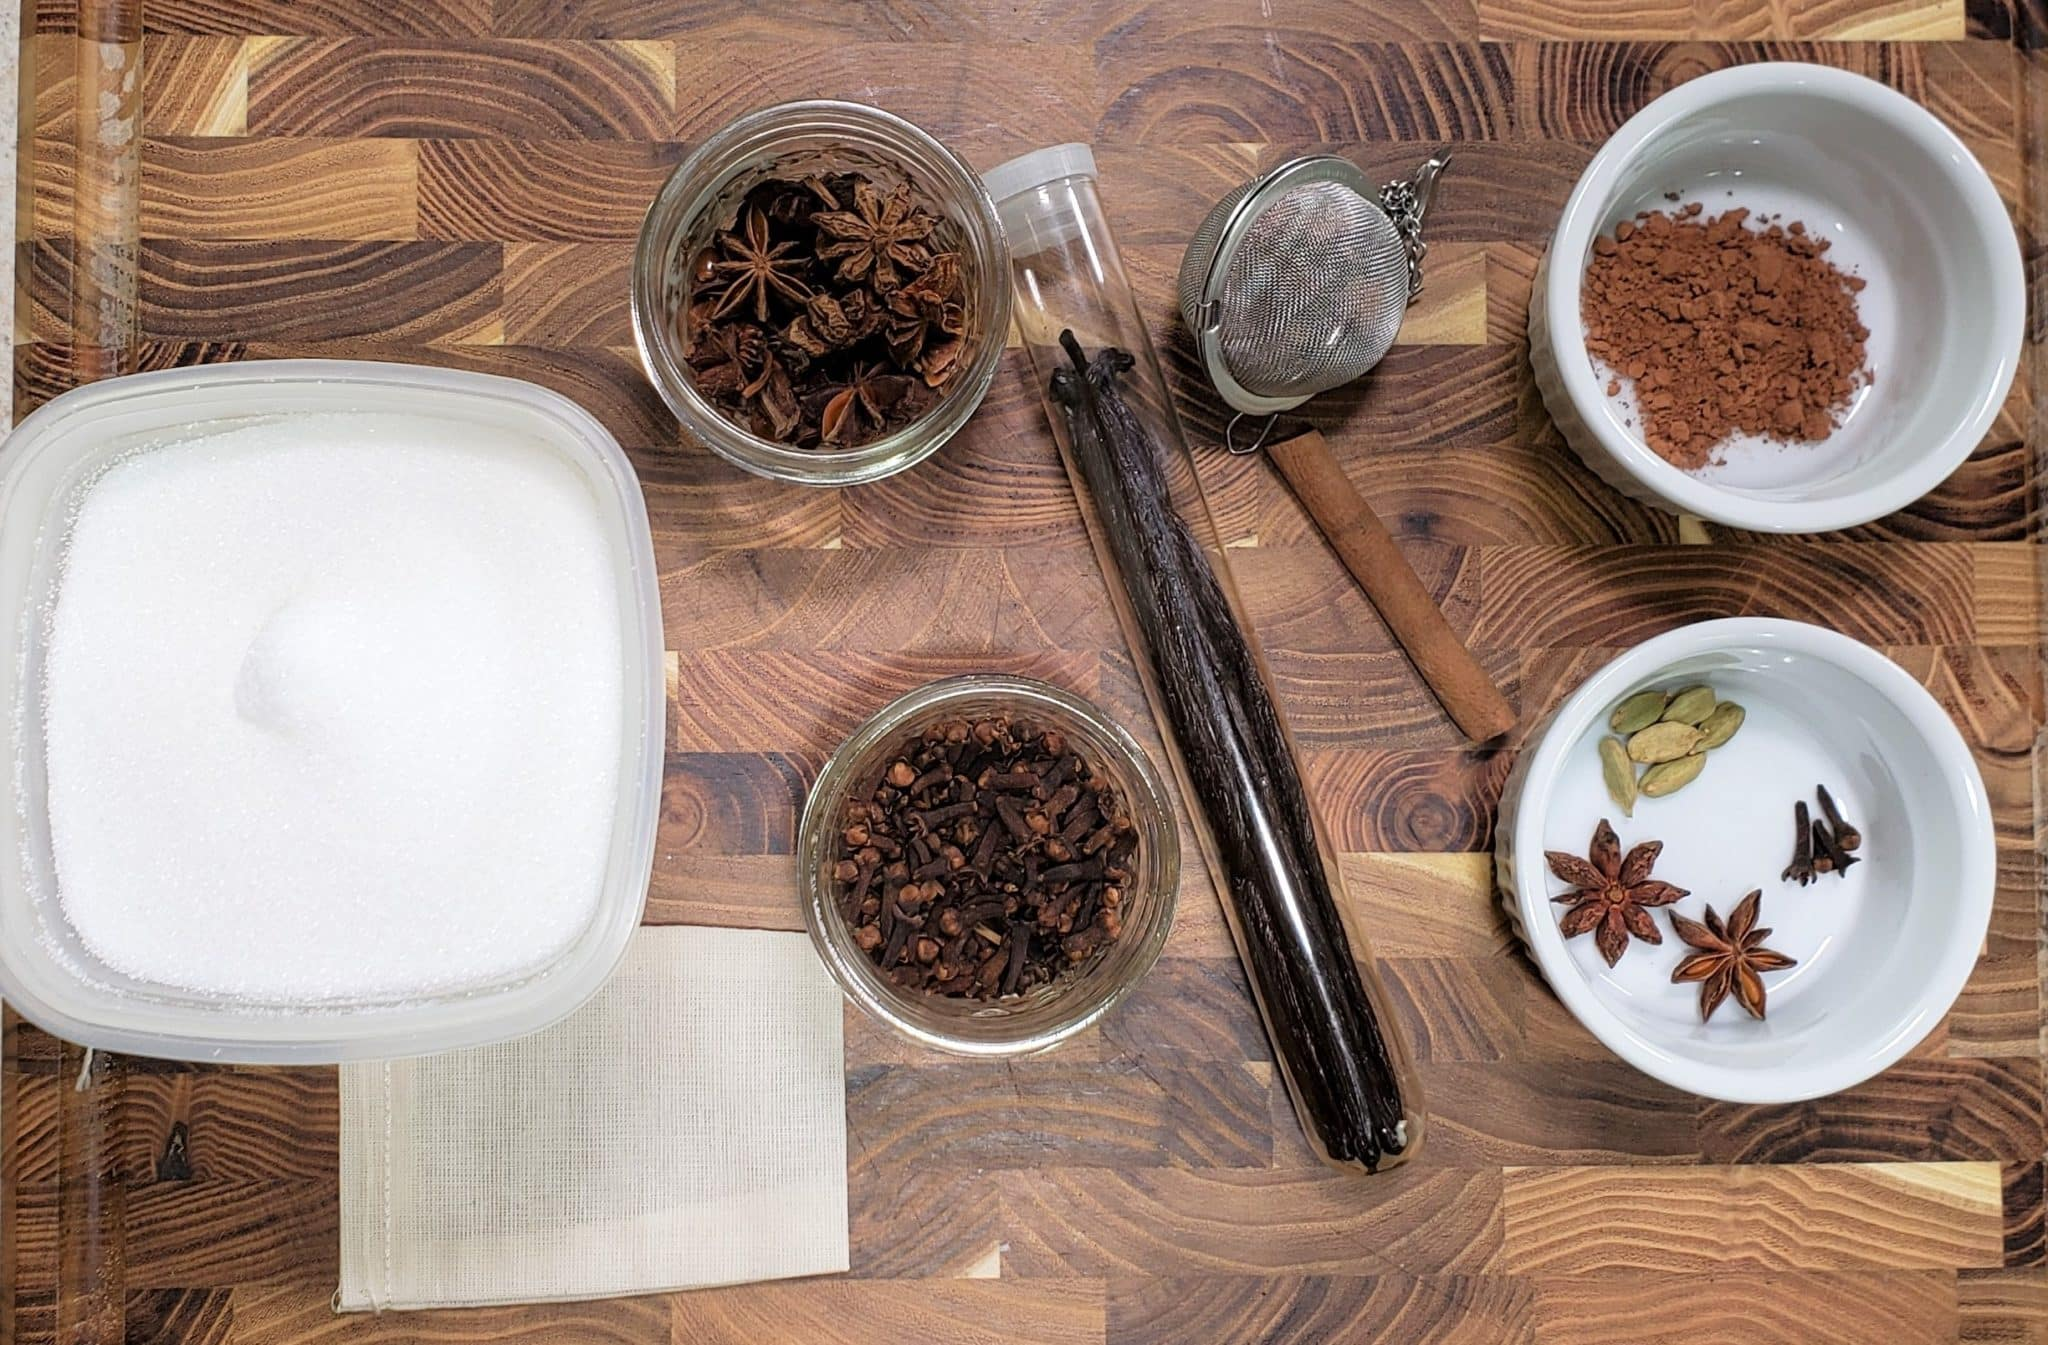 Cast of Ingredients for Spiced Vanilla Sugar